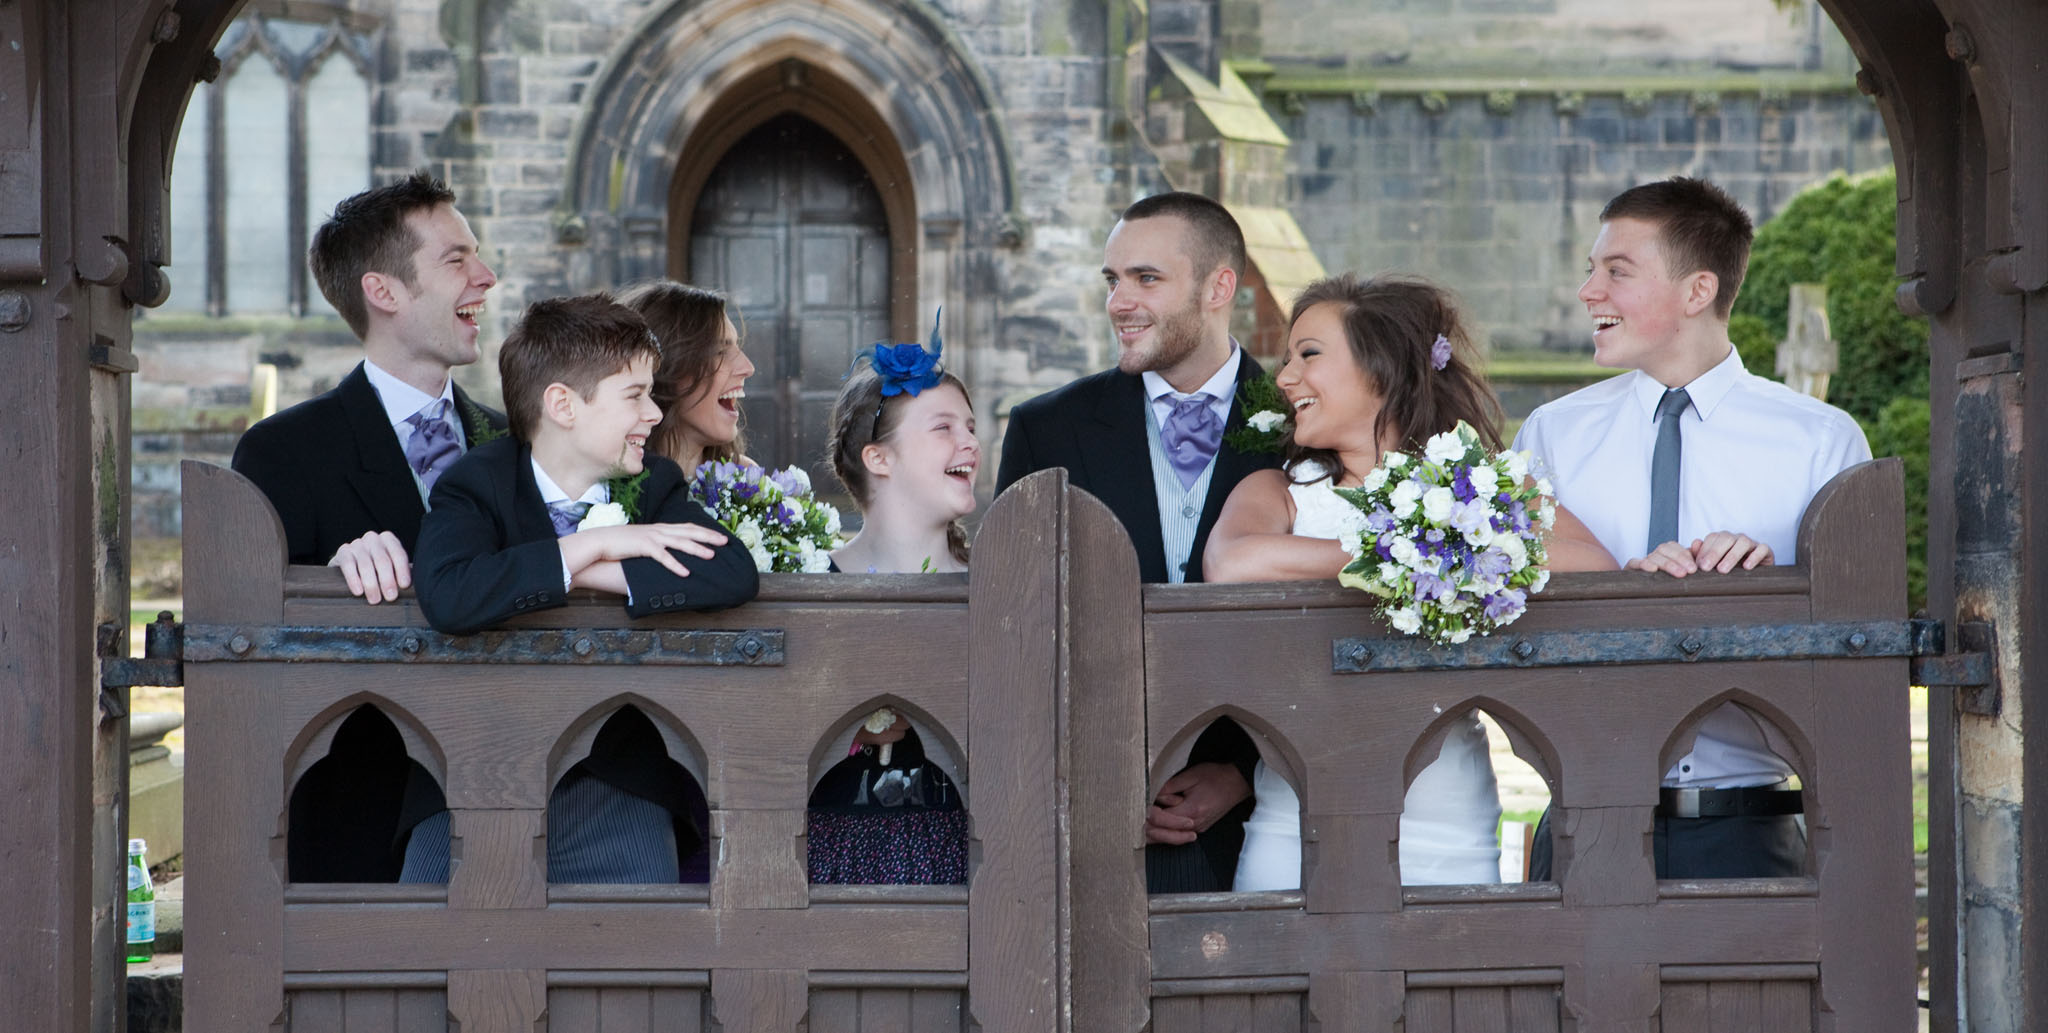 Children at a church blessing for a silver wedding in Lymm, Cheshire